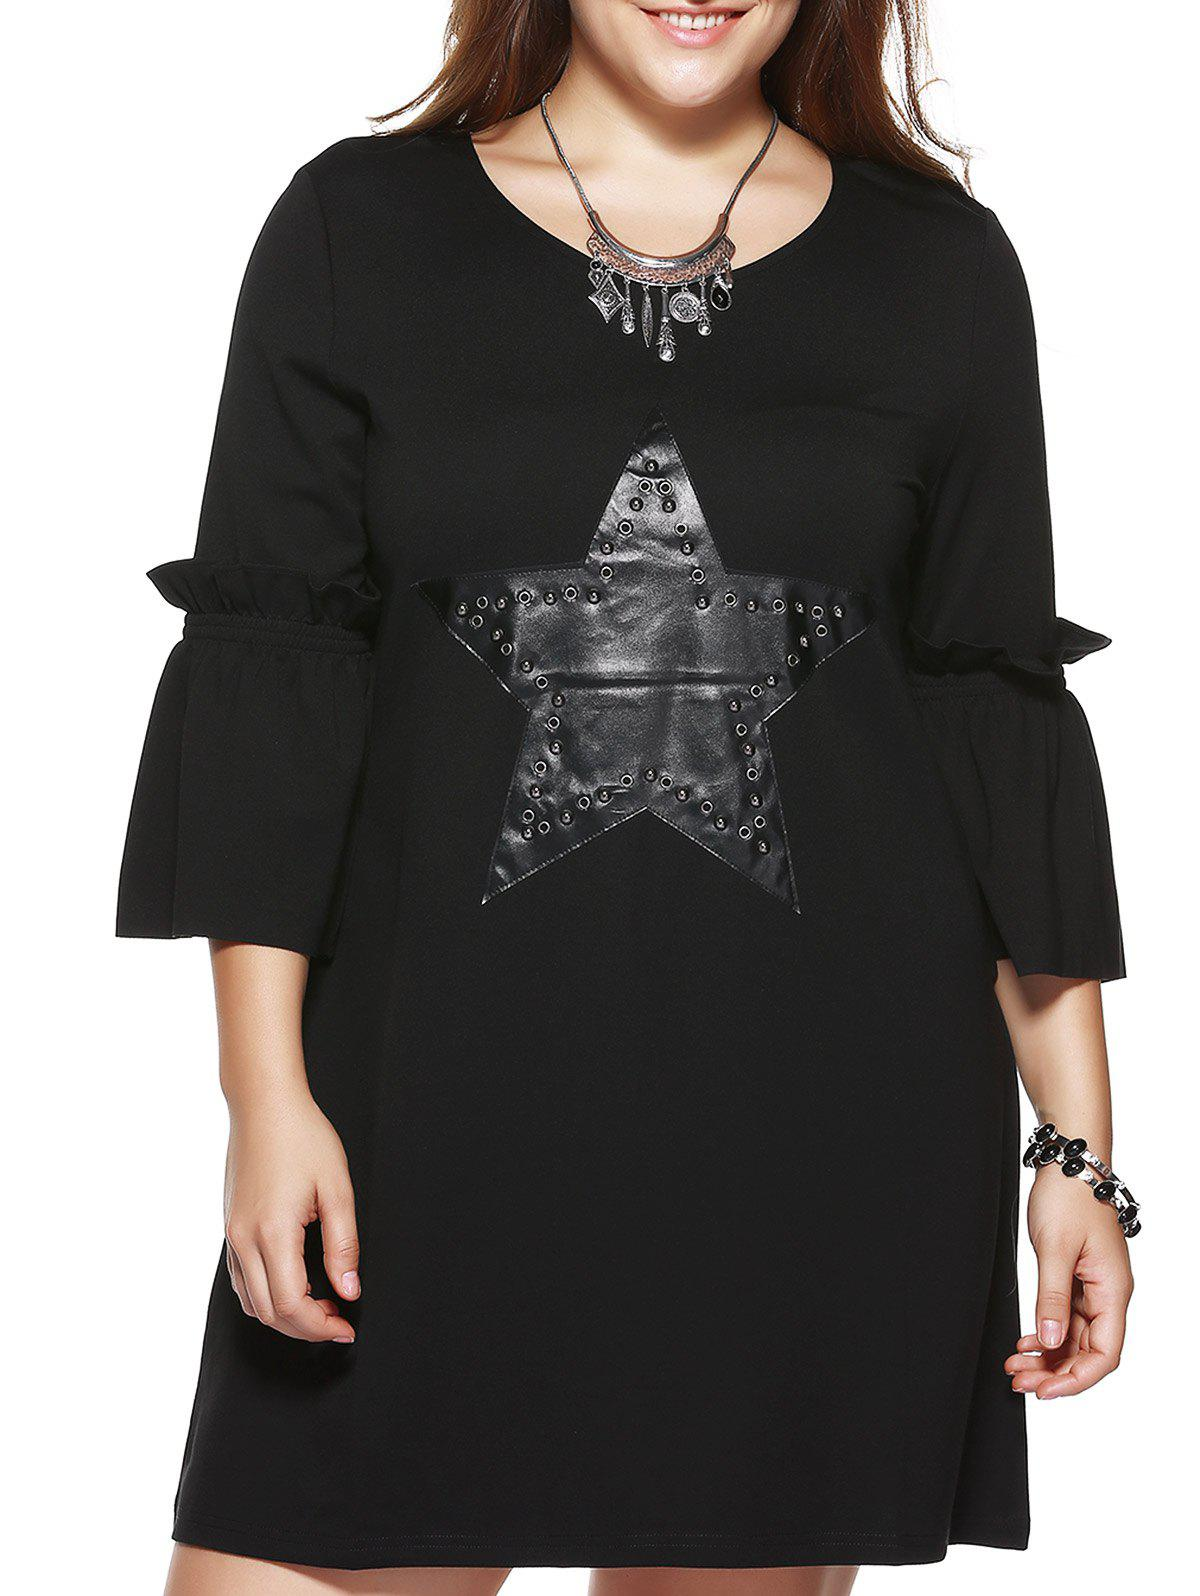 Oversized Chic Star Pattern Flare Sleeve Dress - BLACK 4XL